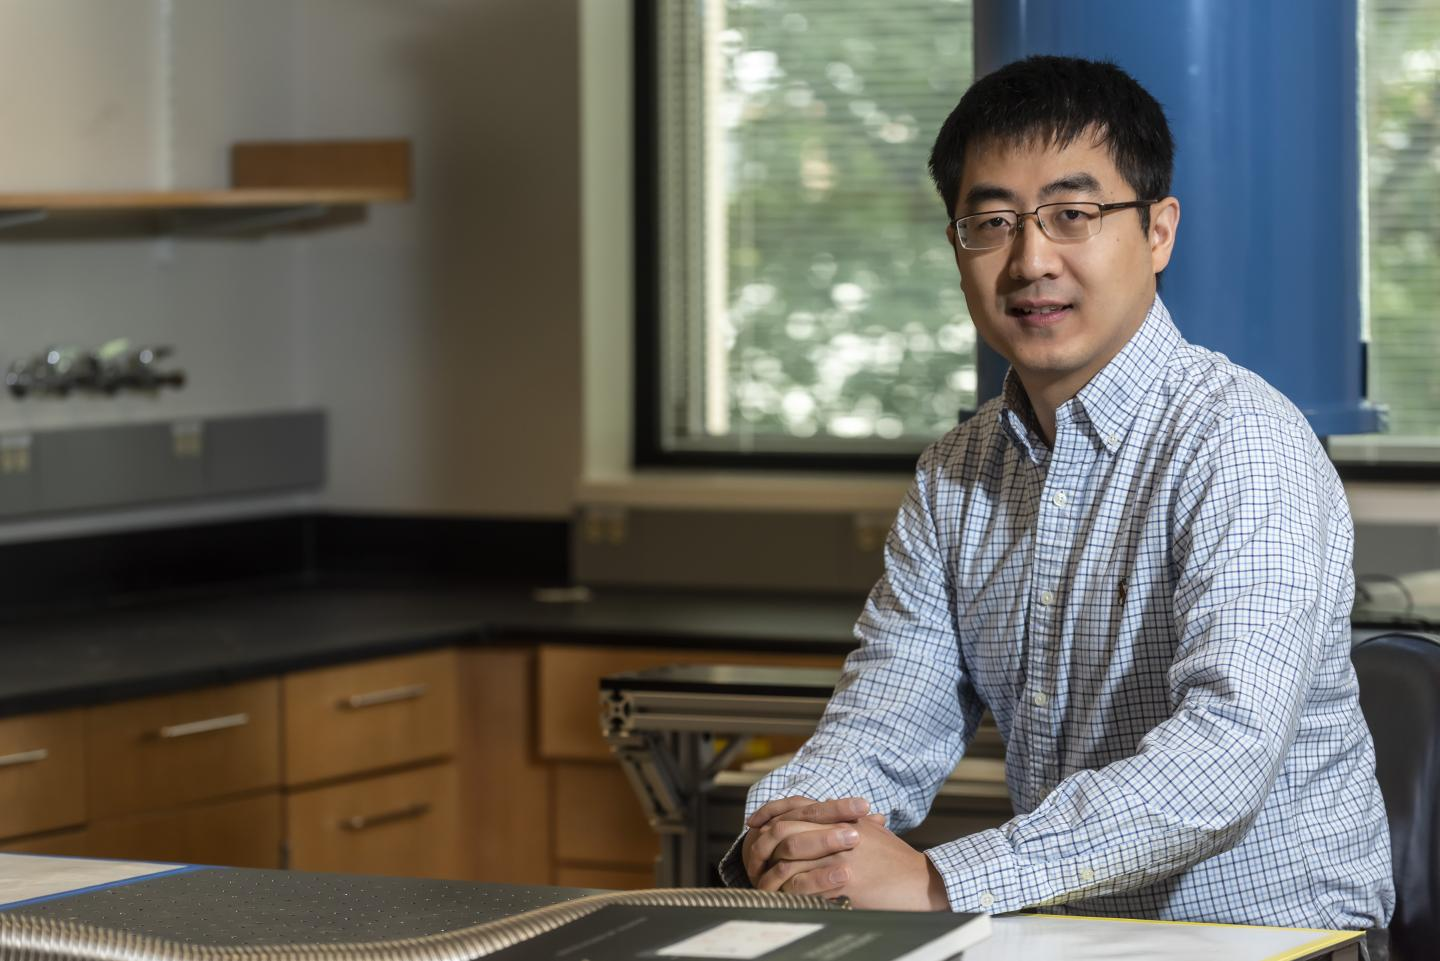 Boston College physicist Brian Zhou receives NSF CAREER Award